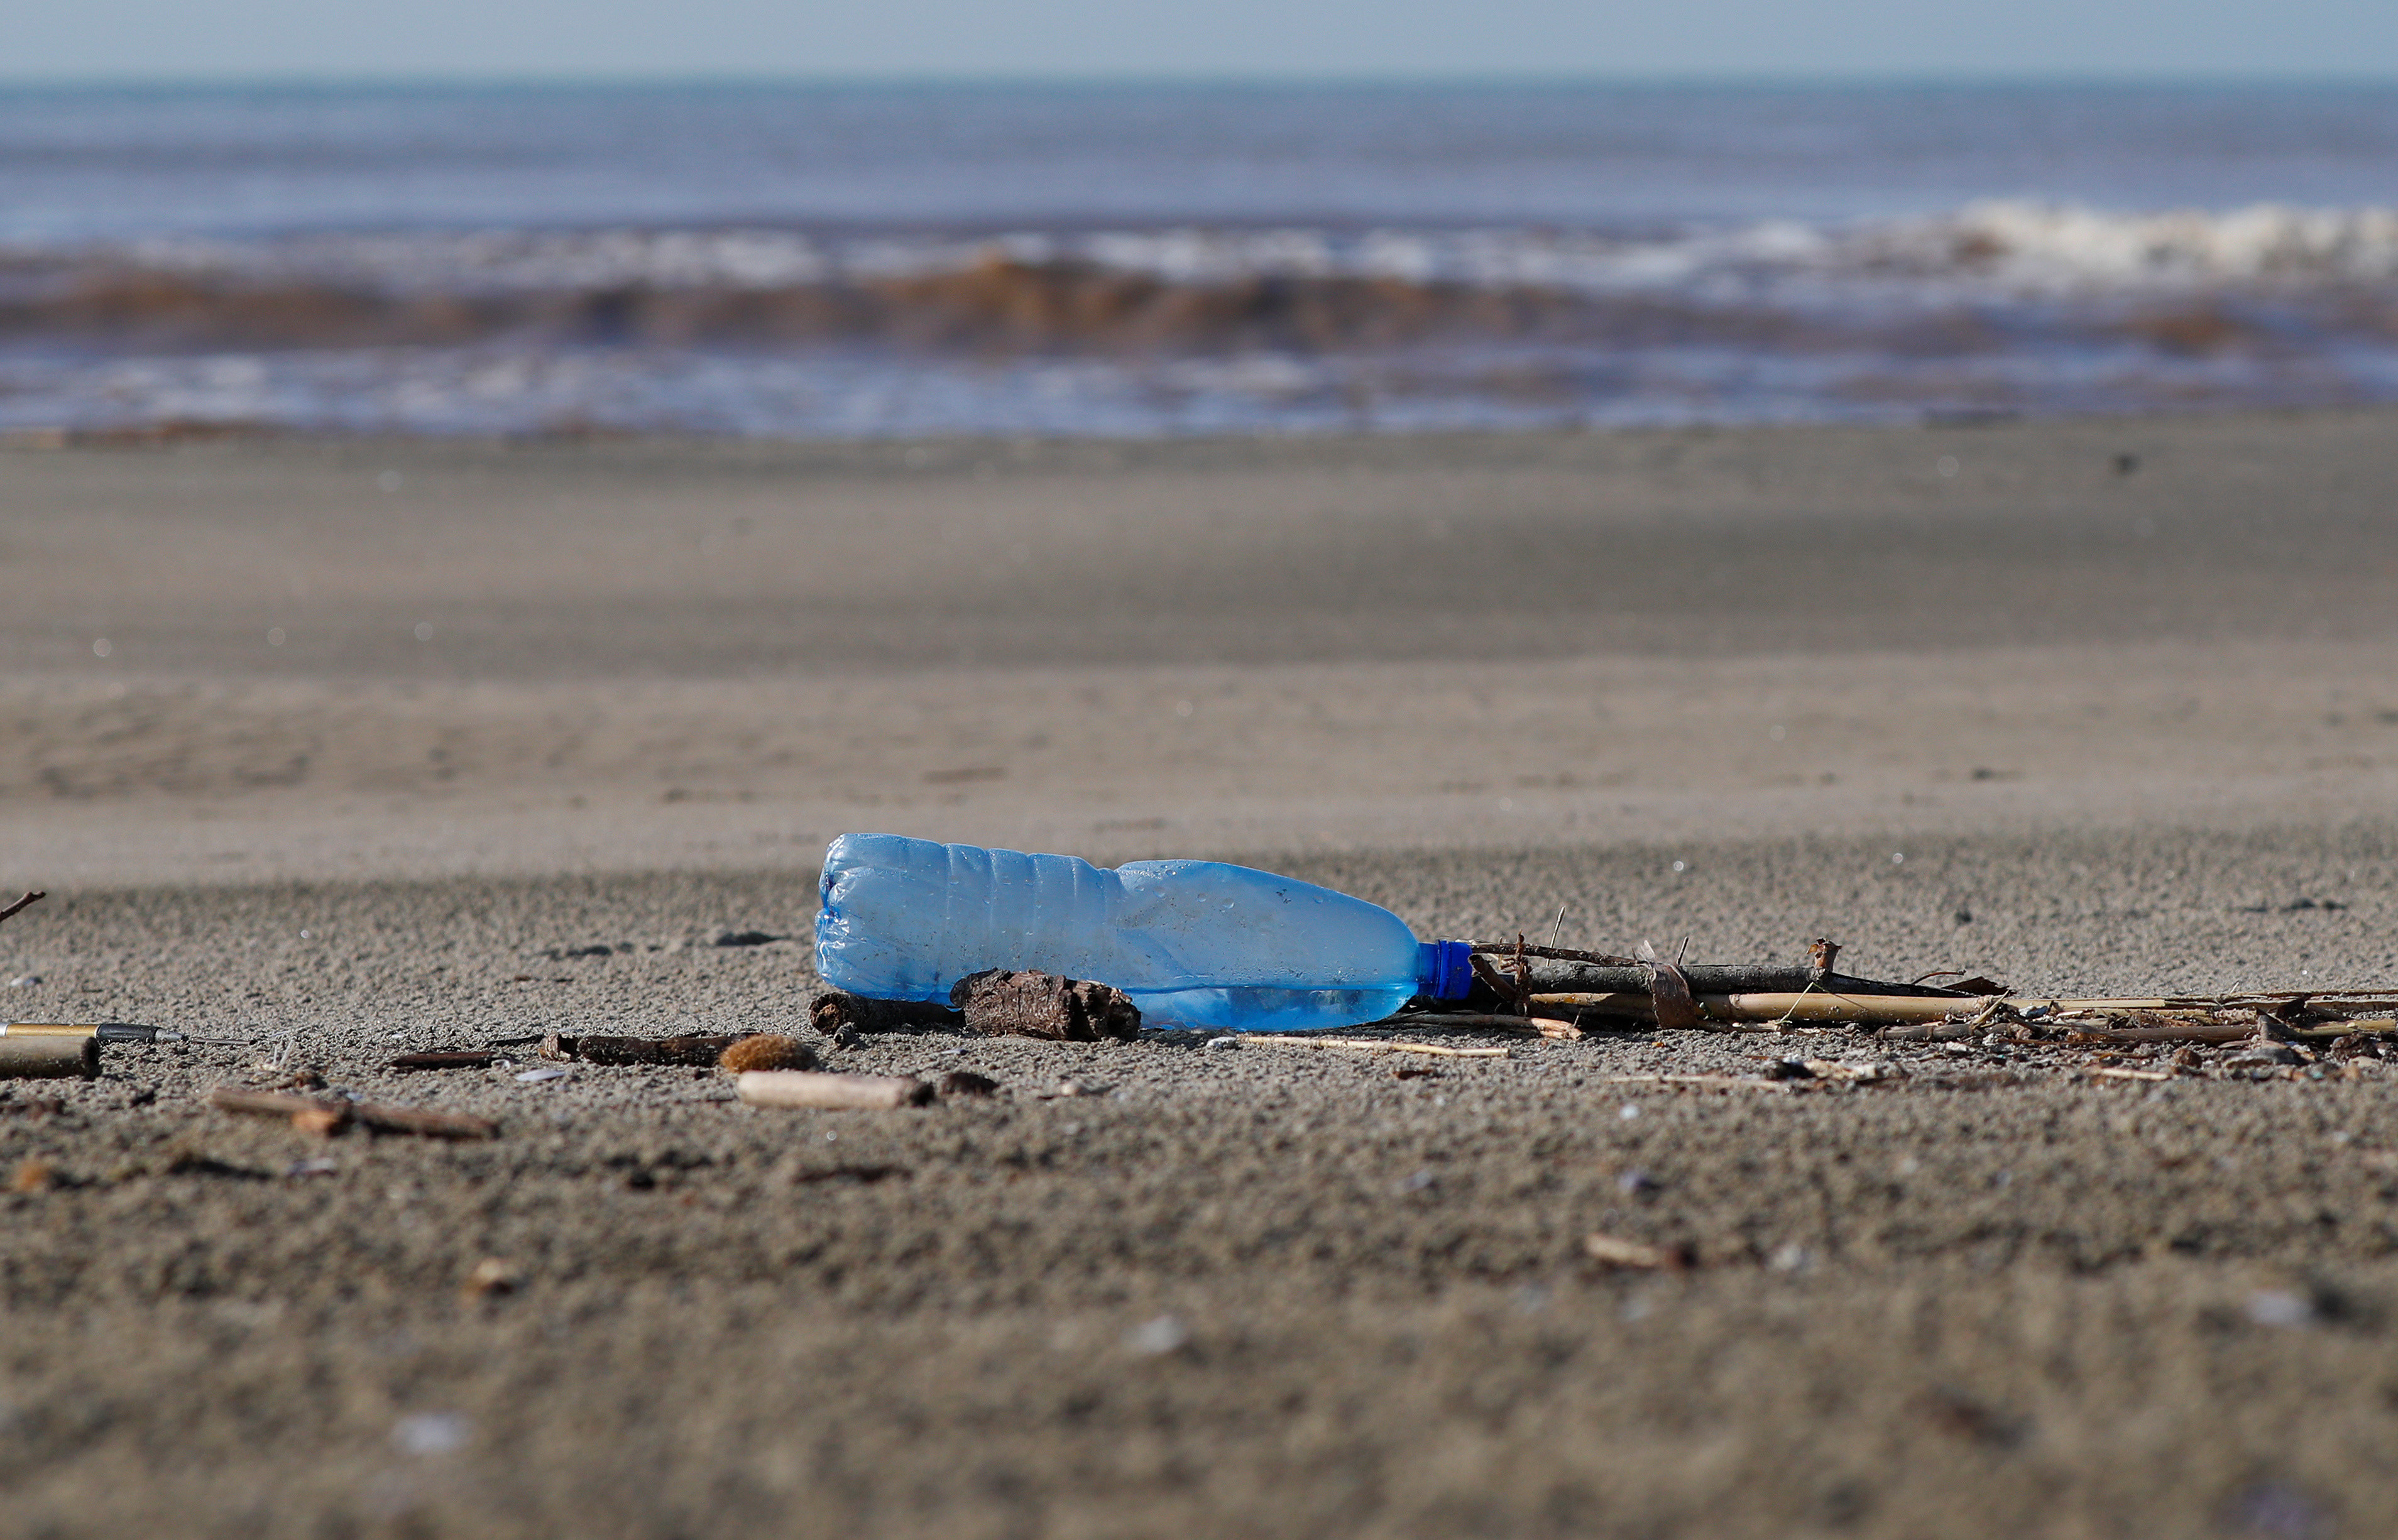 A plastic bottle lies on the sand at Maccarese beach, west of Rome, Italy. REUTERS/Max Rossi